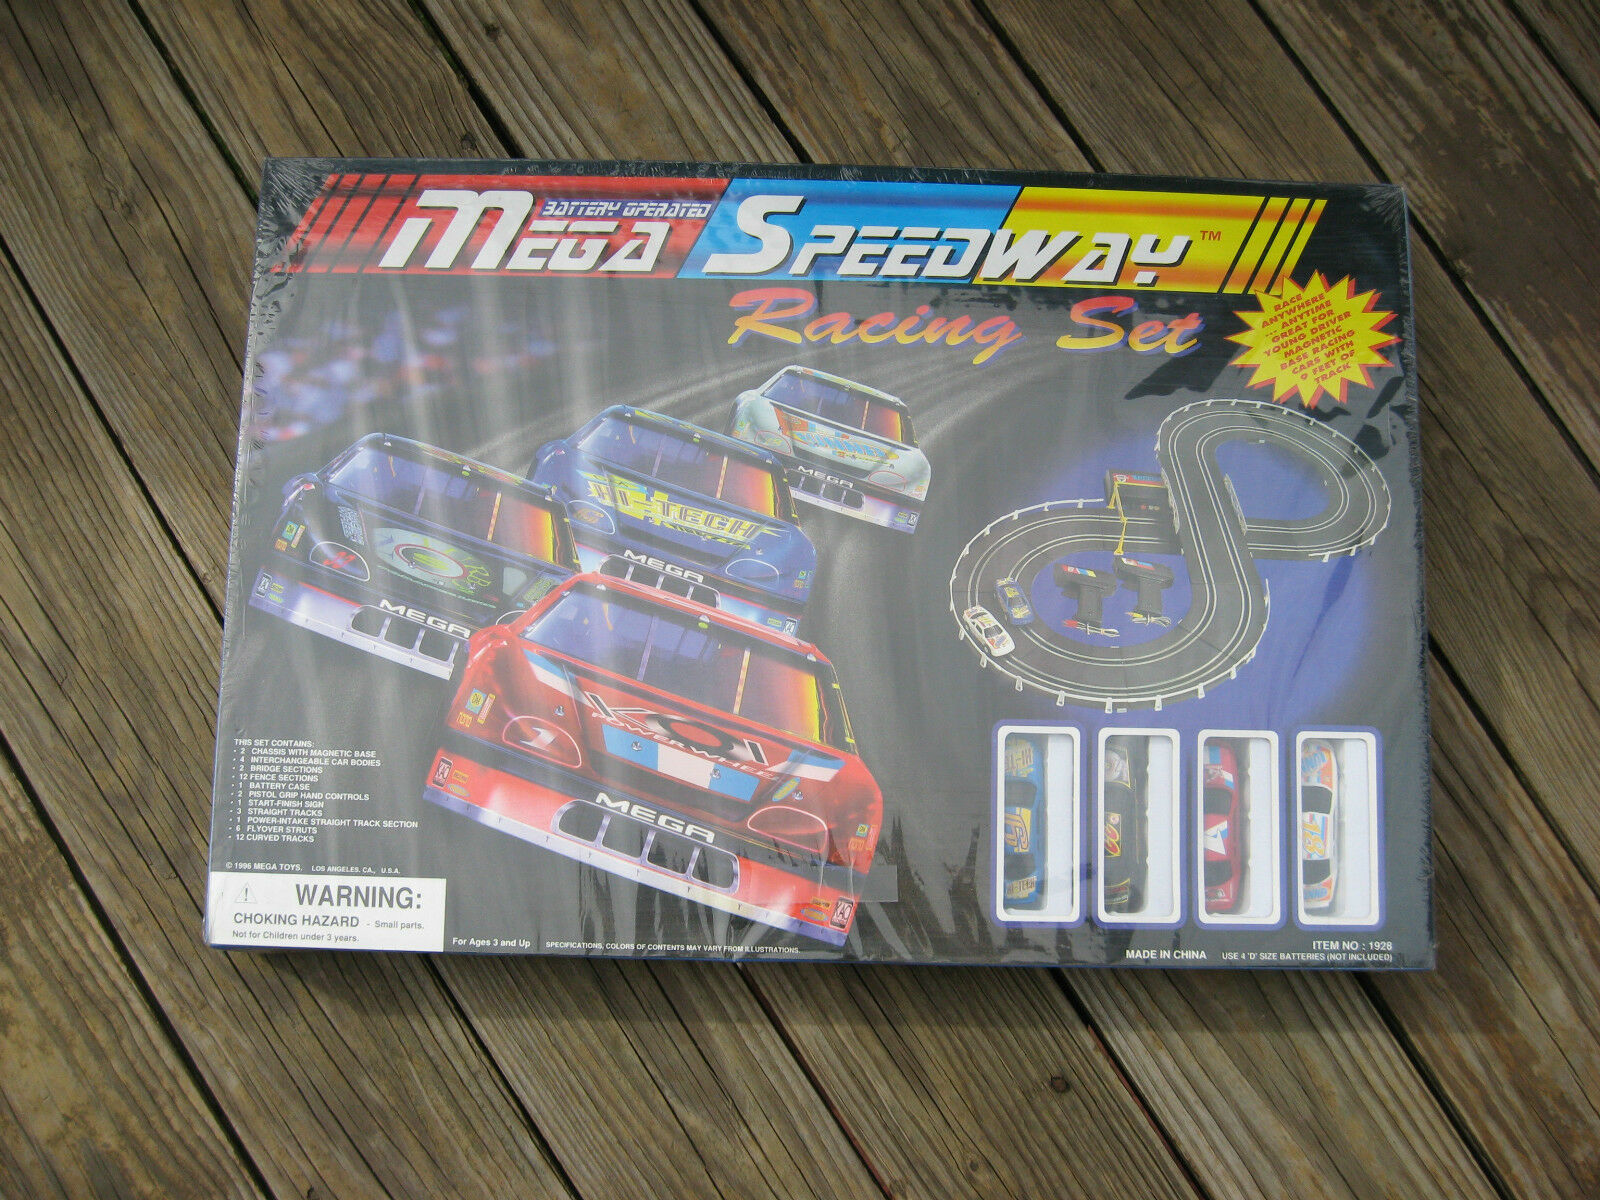 Vintage 1996 Mega Speedway Battery Operated Racing Set New & Sealed In Box